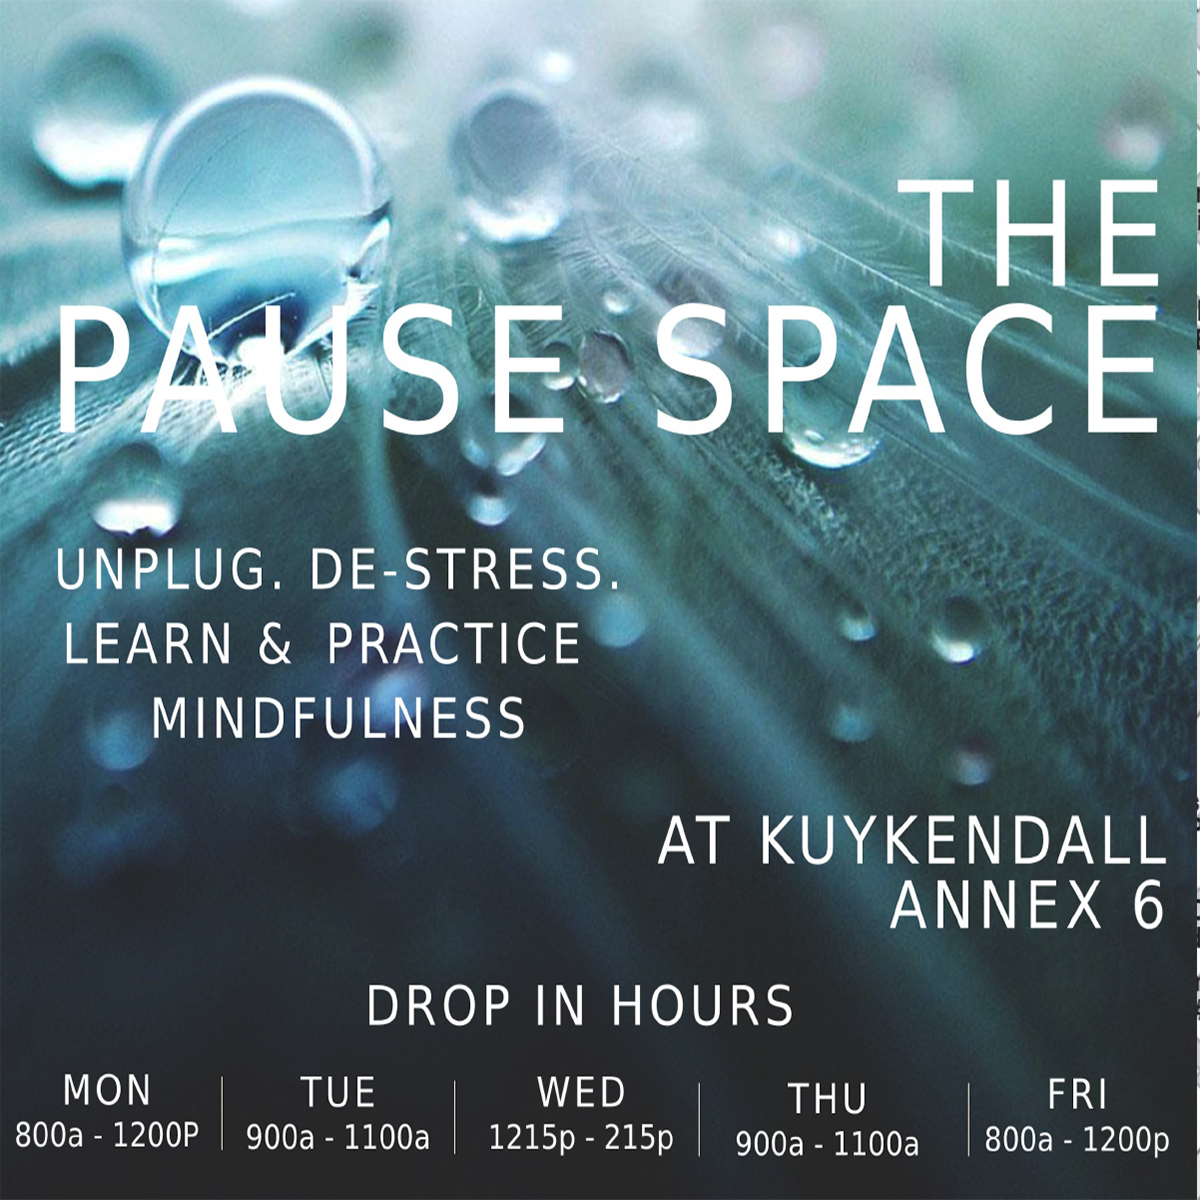 Unplug, De-stress. Learn and practice mindfulness at Kuykendall Annex 6. Hours, Monday 8-12 am, Tuesday 9-11 am, Wednesday 12:15-2:15PM, Thursday 9-11 am, Friday 8-12 am,